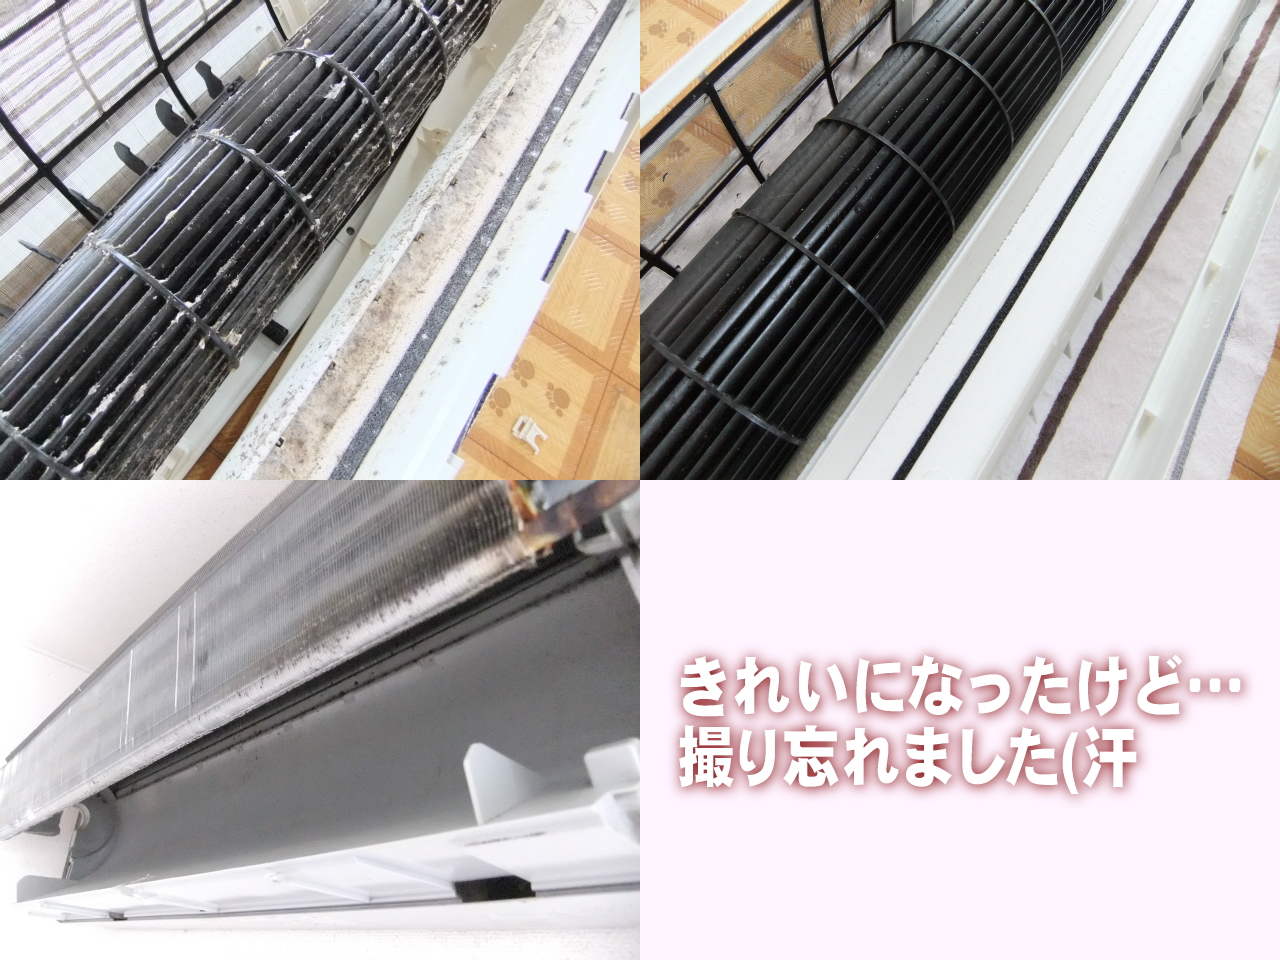 http://ajras.net/images/110804-aircon2.jpg